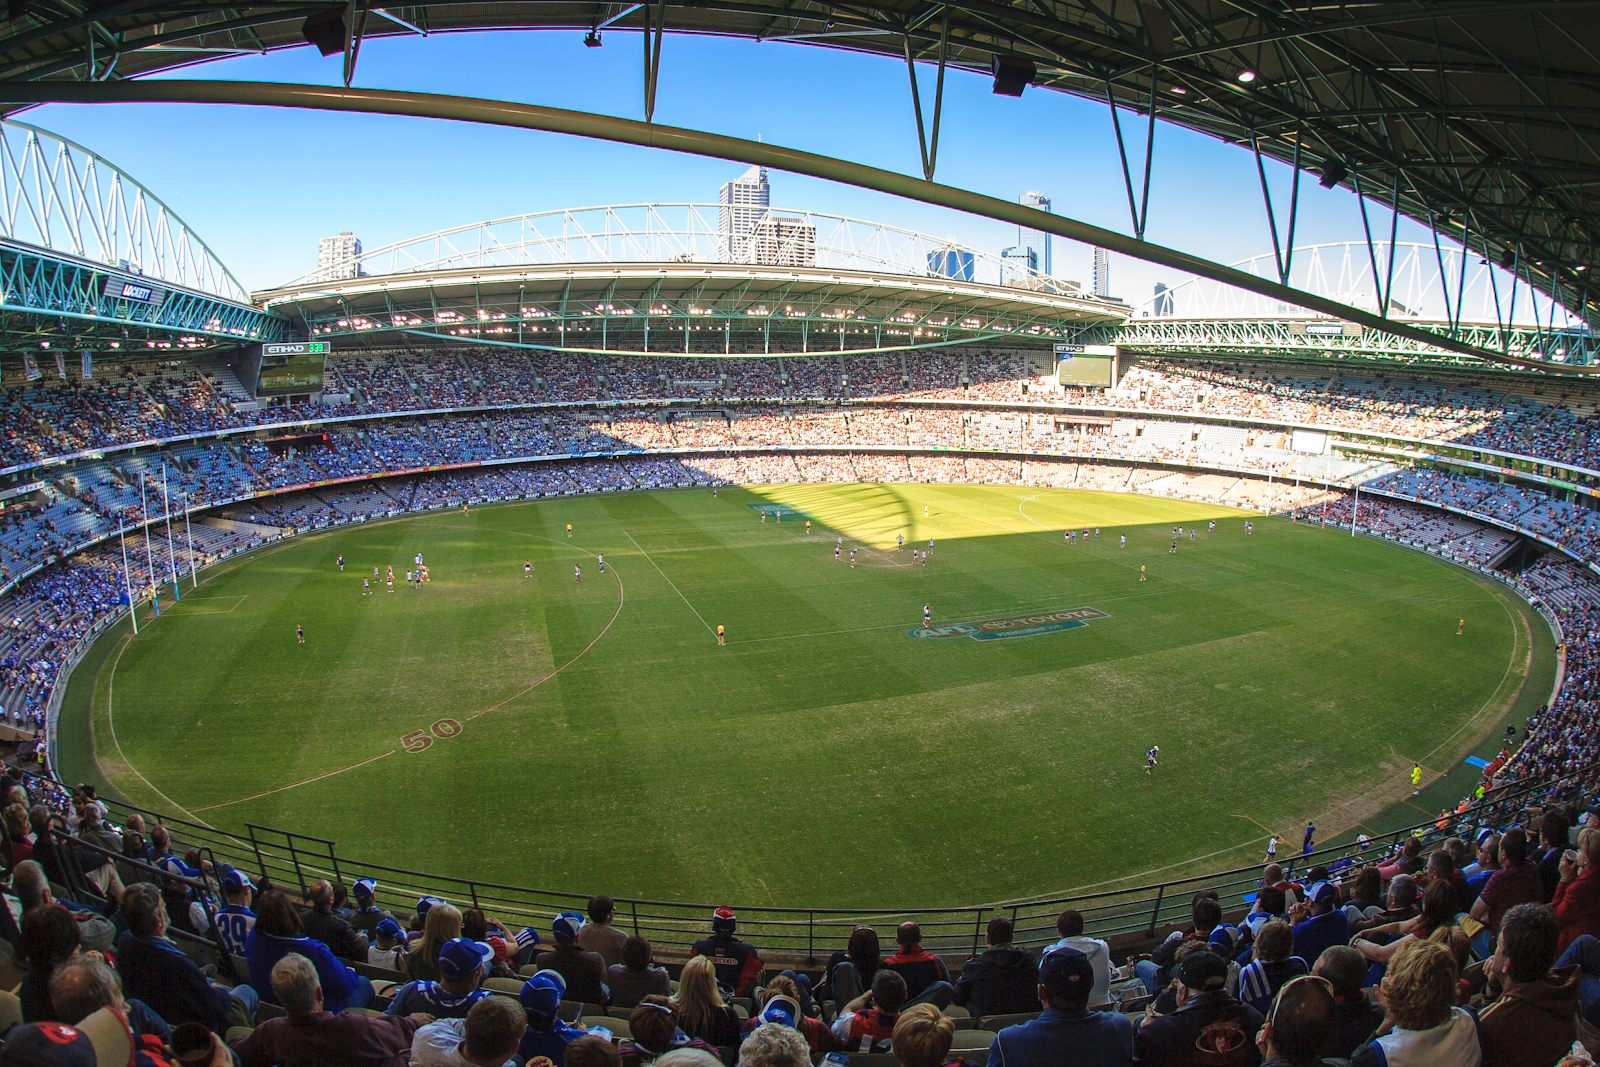 etihad stadium - photo #20